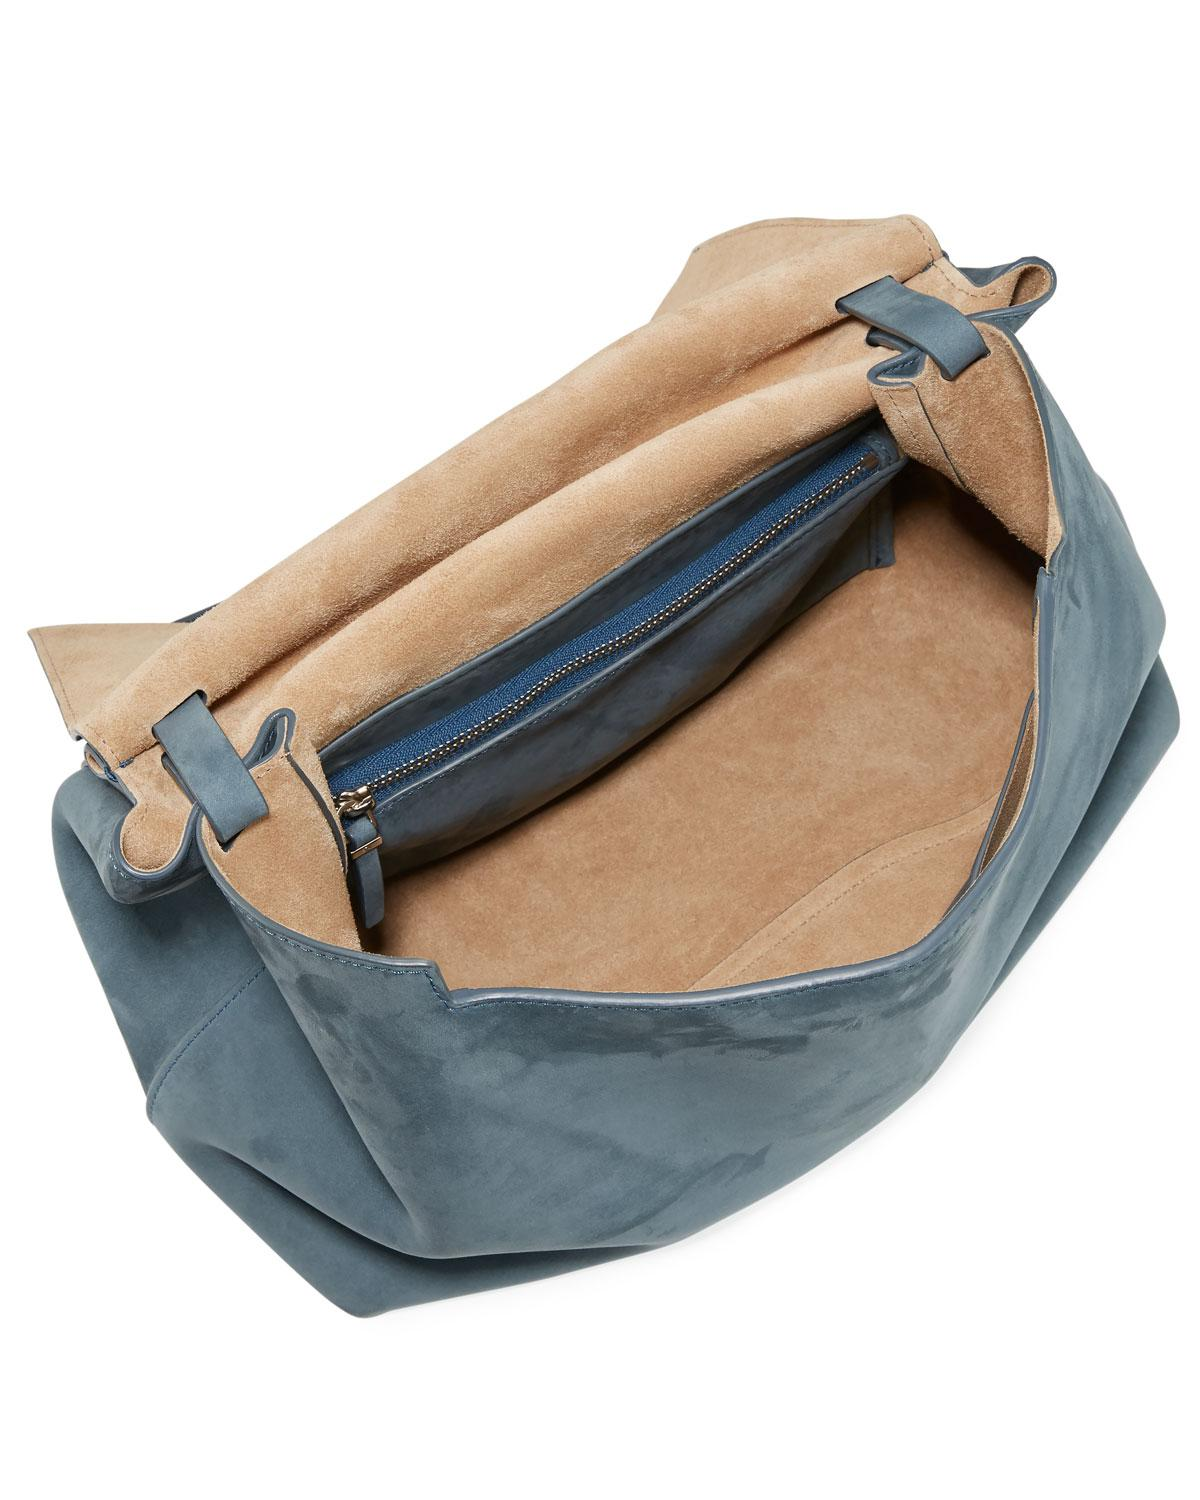 daf2943931 Lyst - The Row Sidekick Two Suede Shoulder Bag in Blue